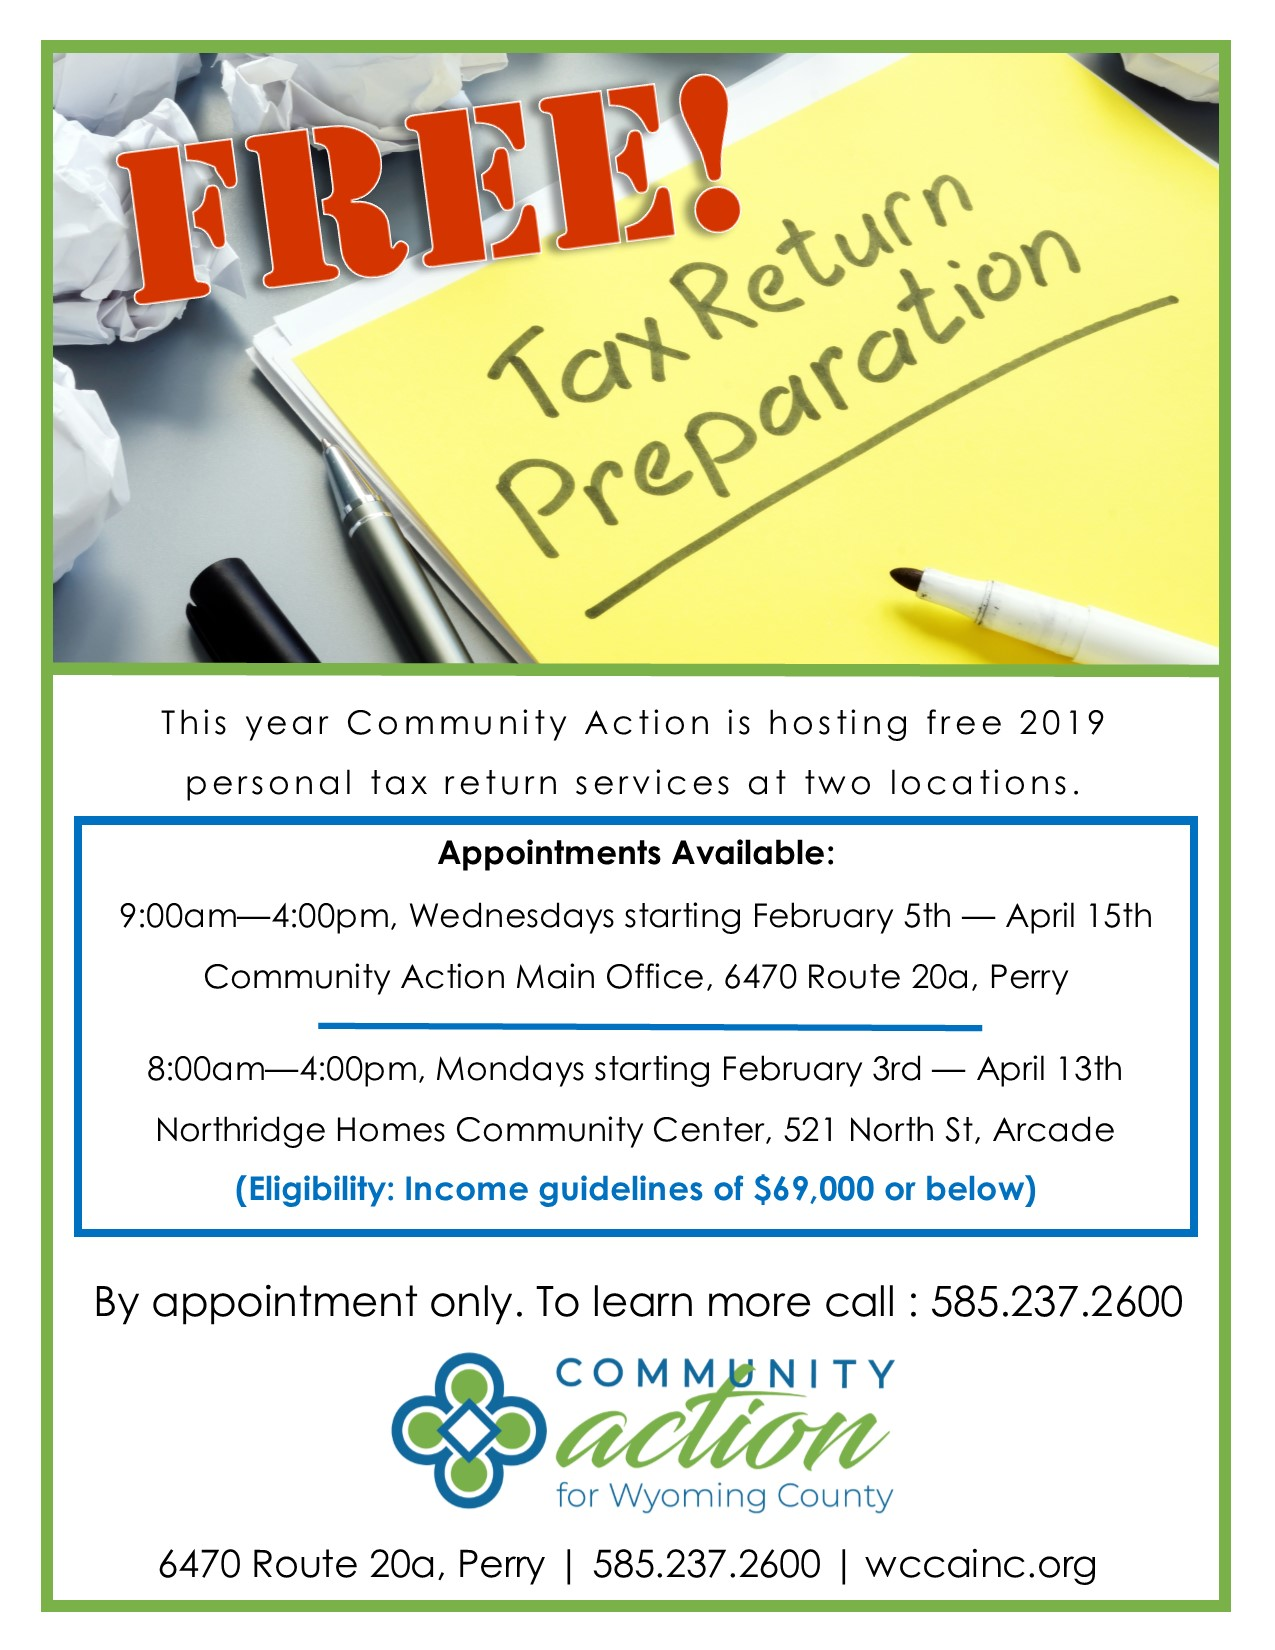 Community Action For Wyoming County Wcca To Offer Free Tax Return Preparation Services